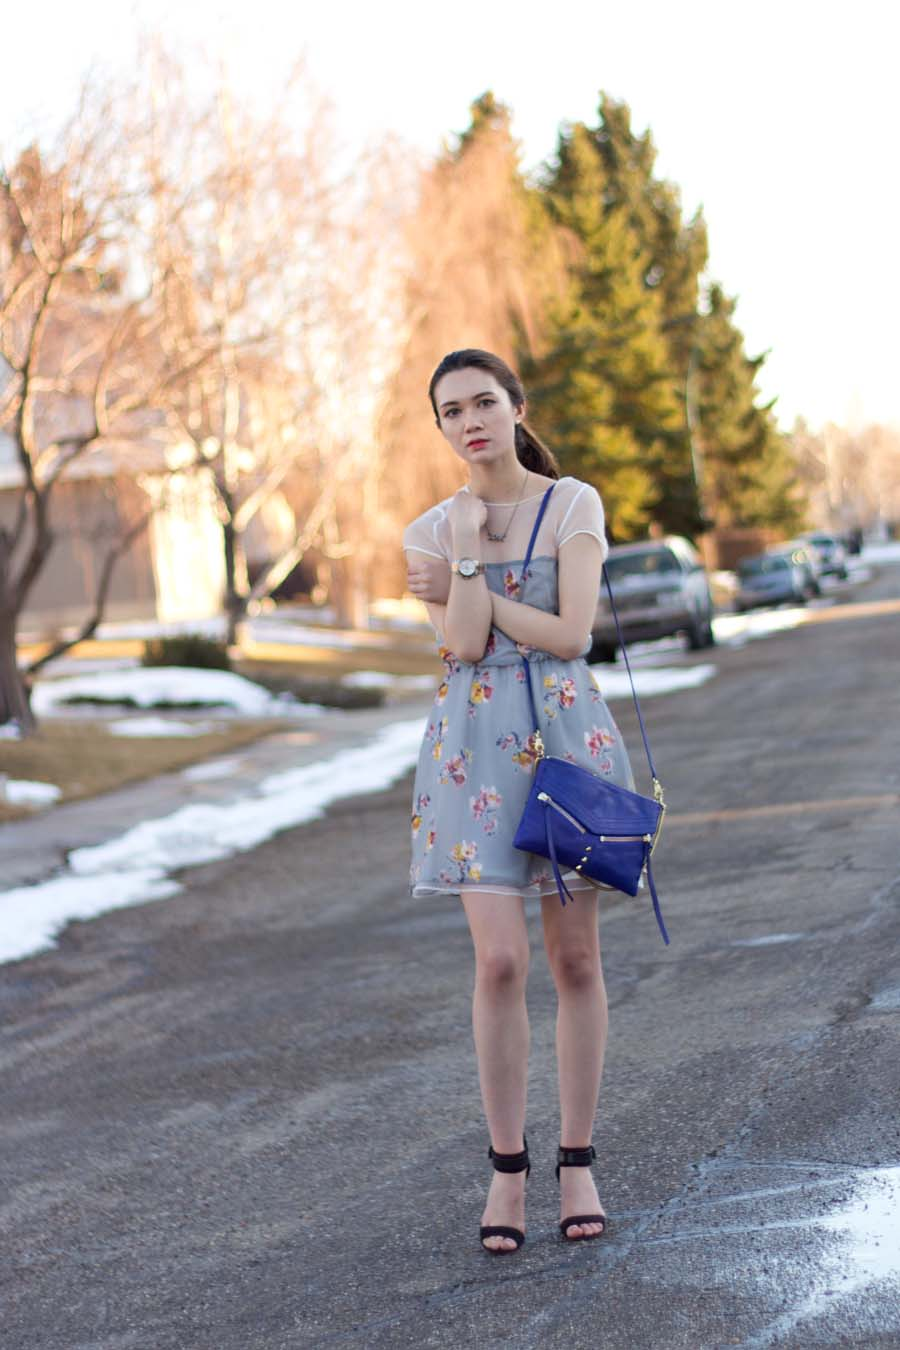 spring fashion, winter to spring fashion, sundress, summer dress, sheer dress, transitional style